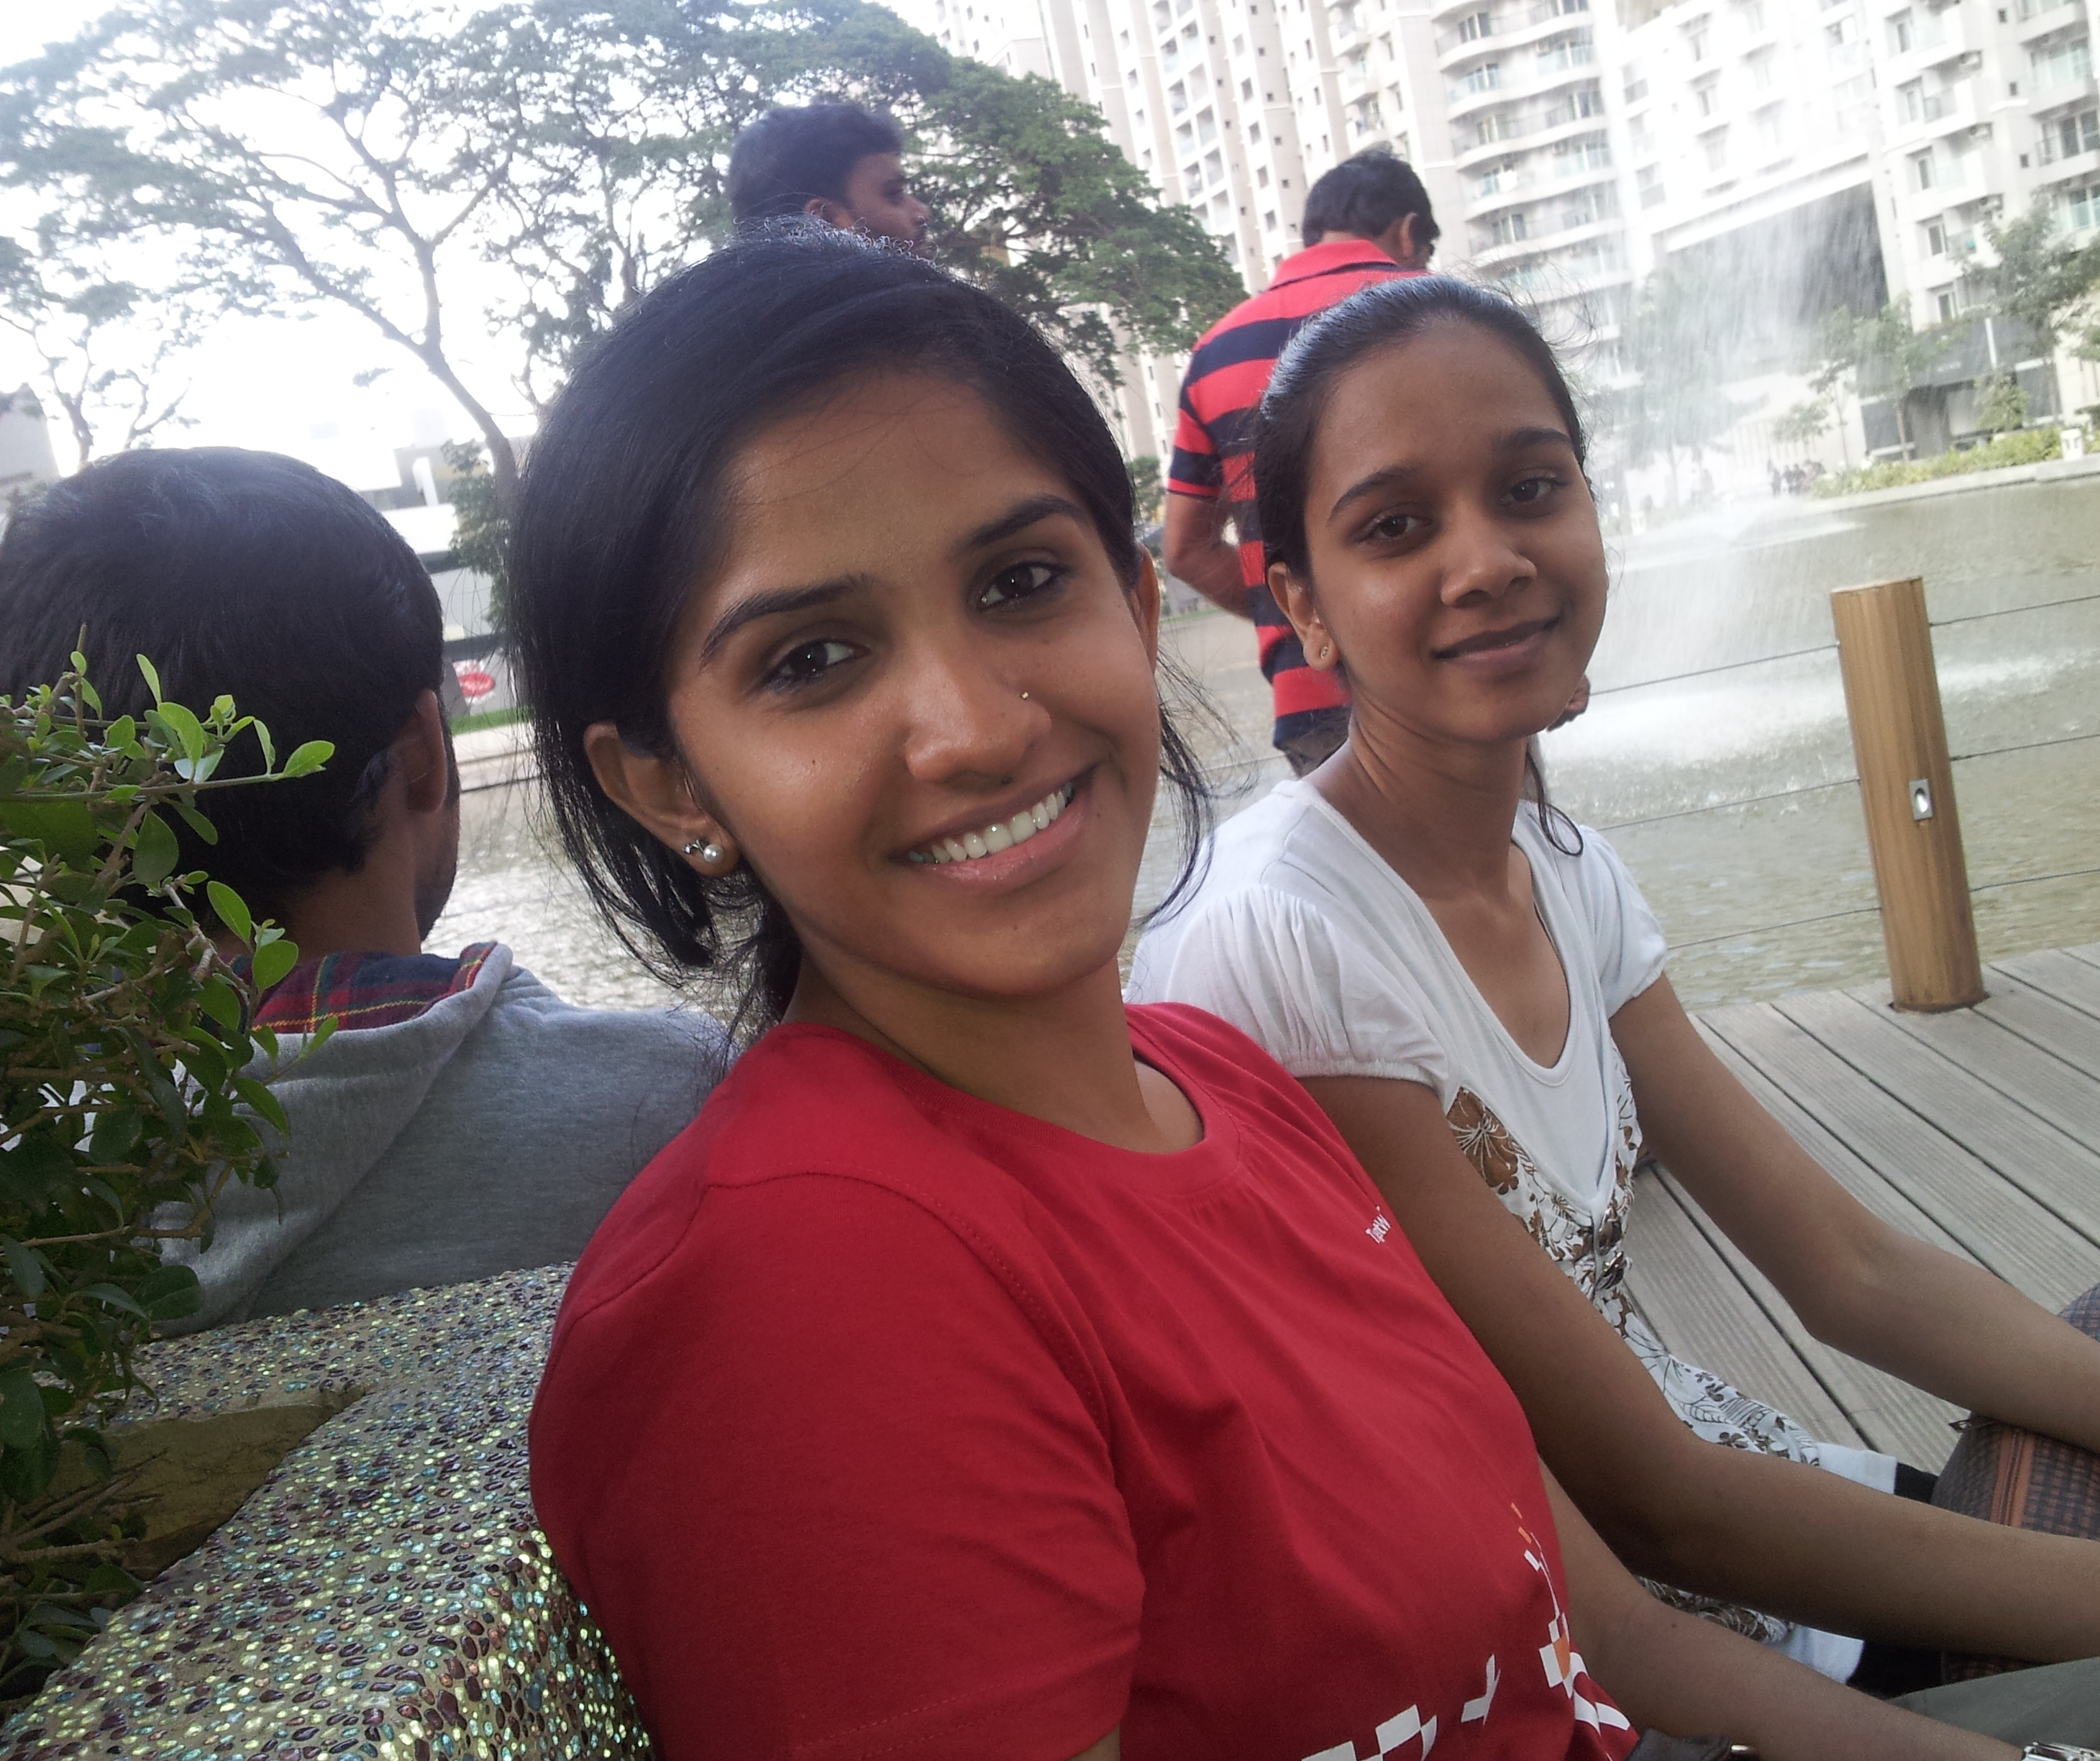 Pallavi and Sakshi together in Bangalore